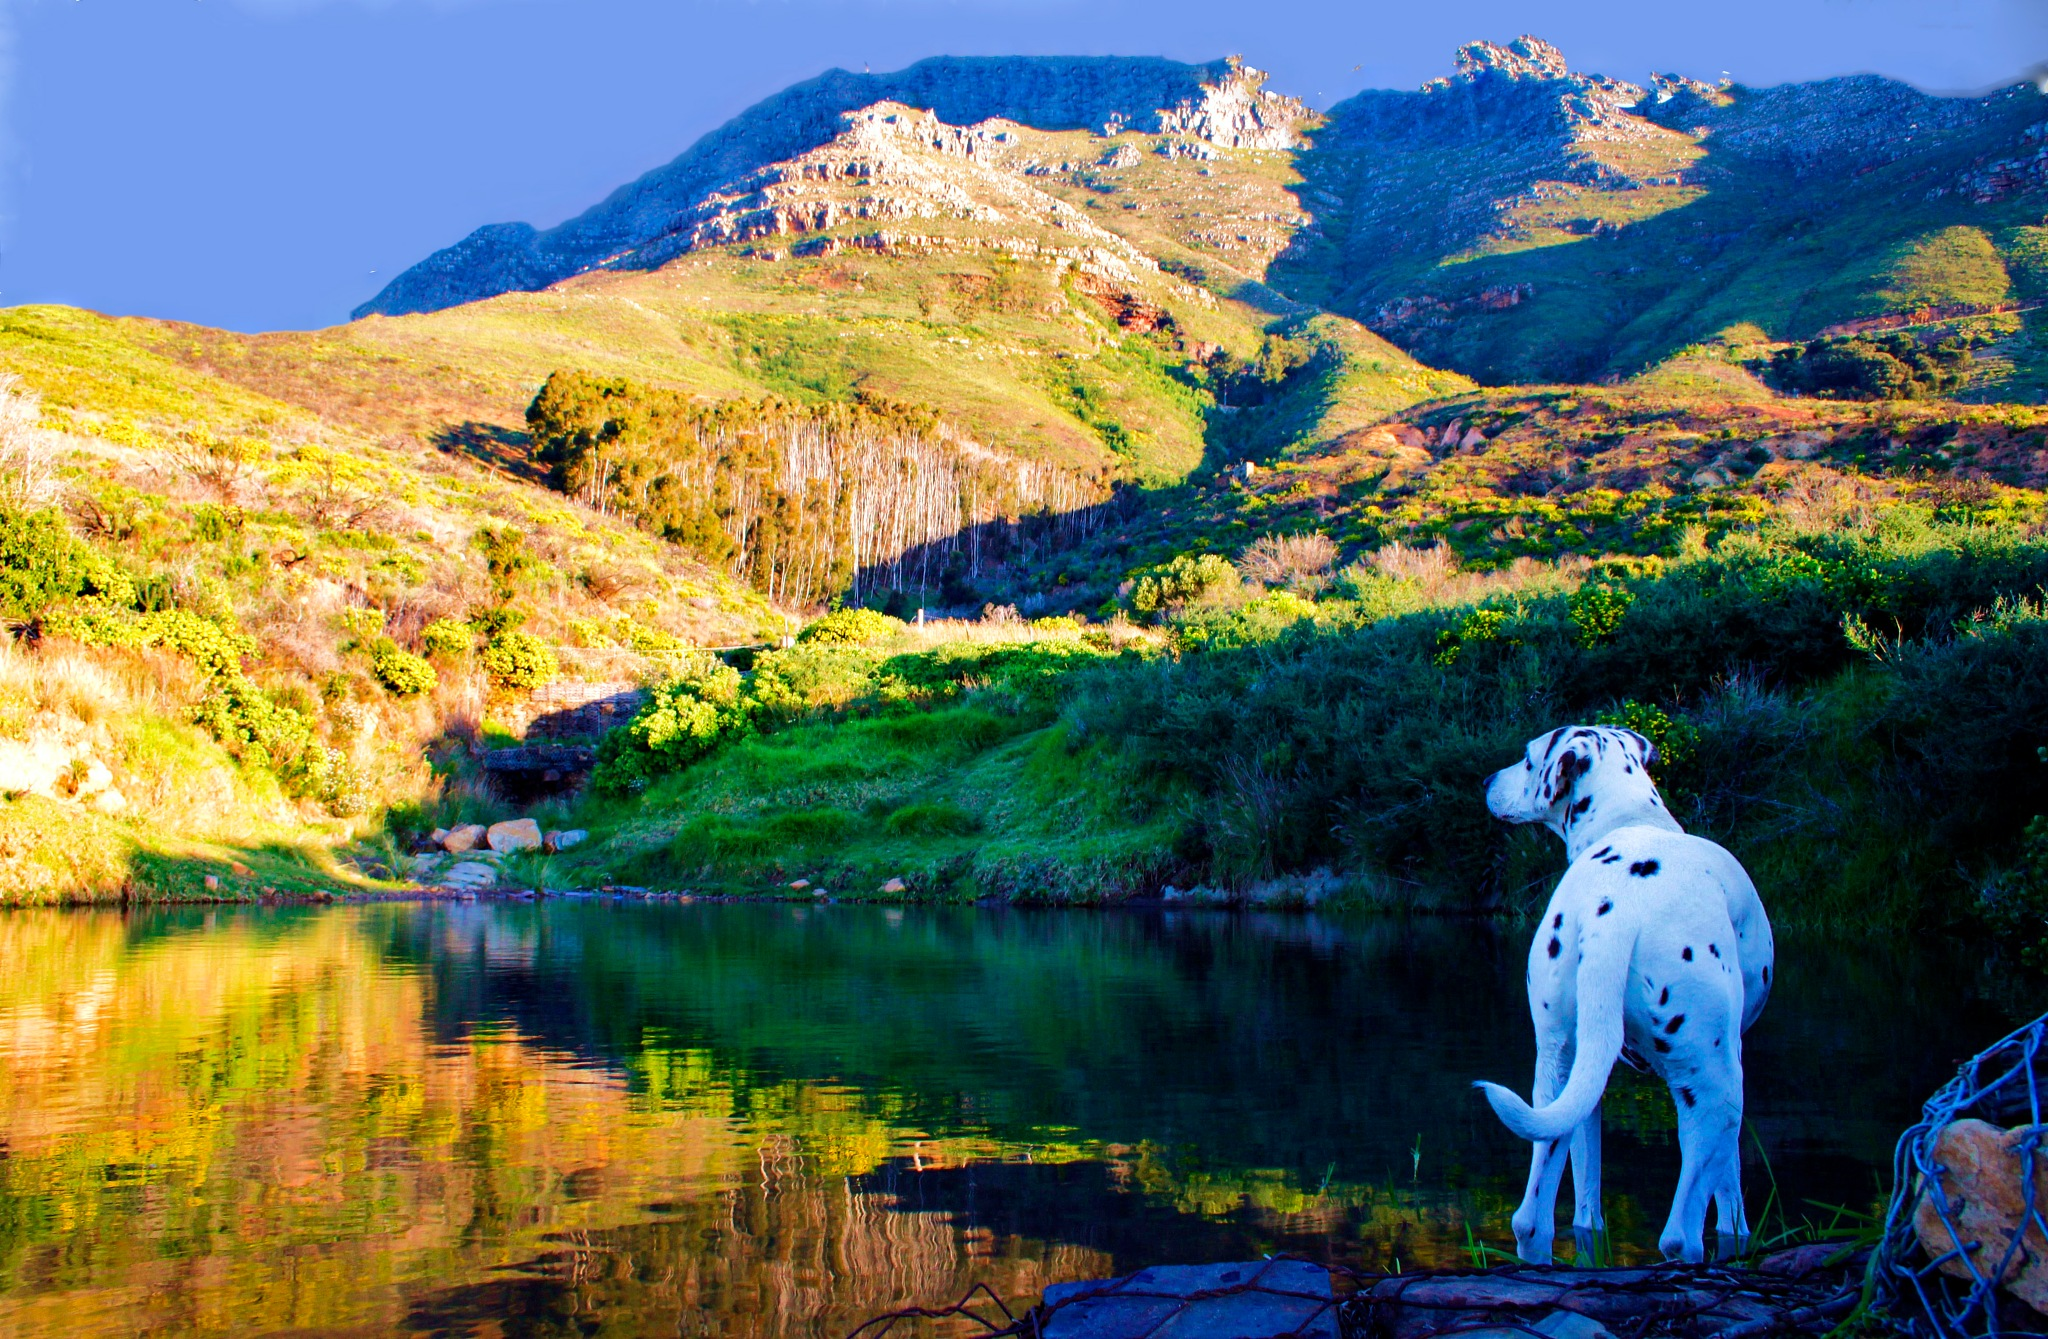 Dalmation at mountain pool by Nauta Piscatorque